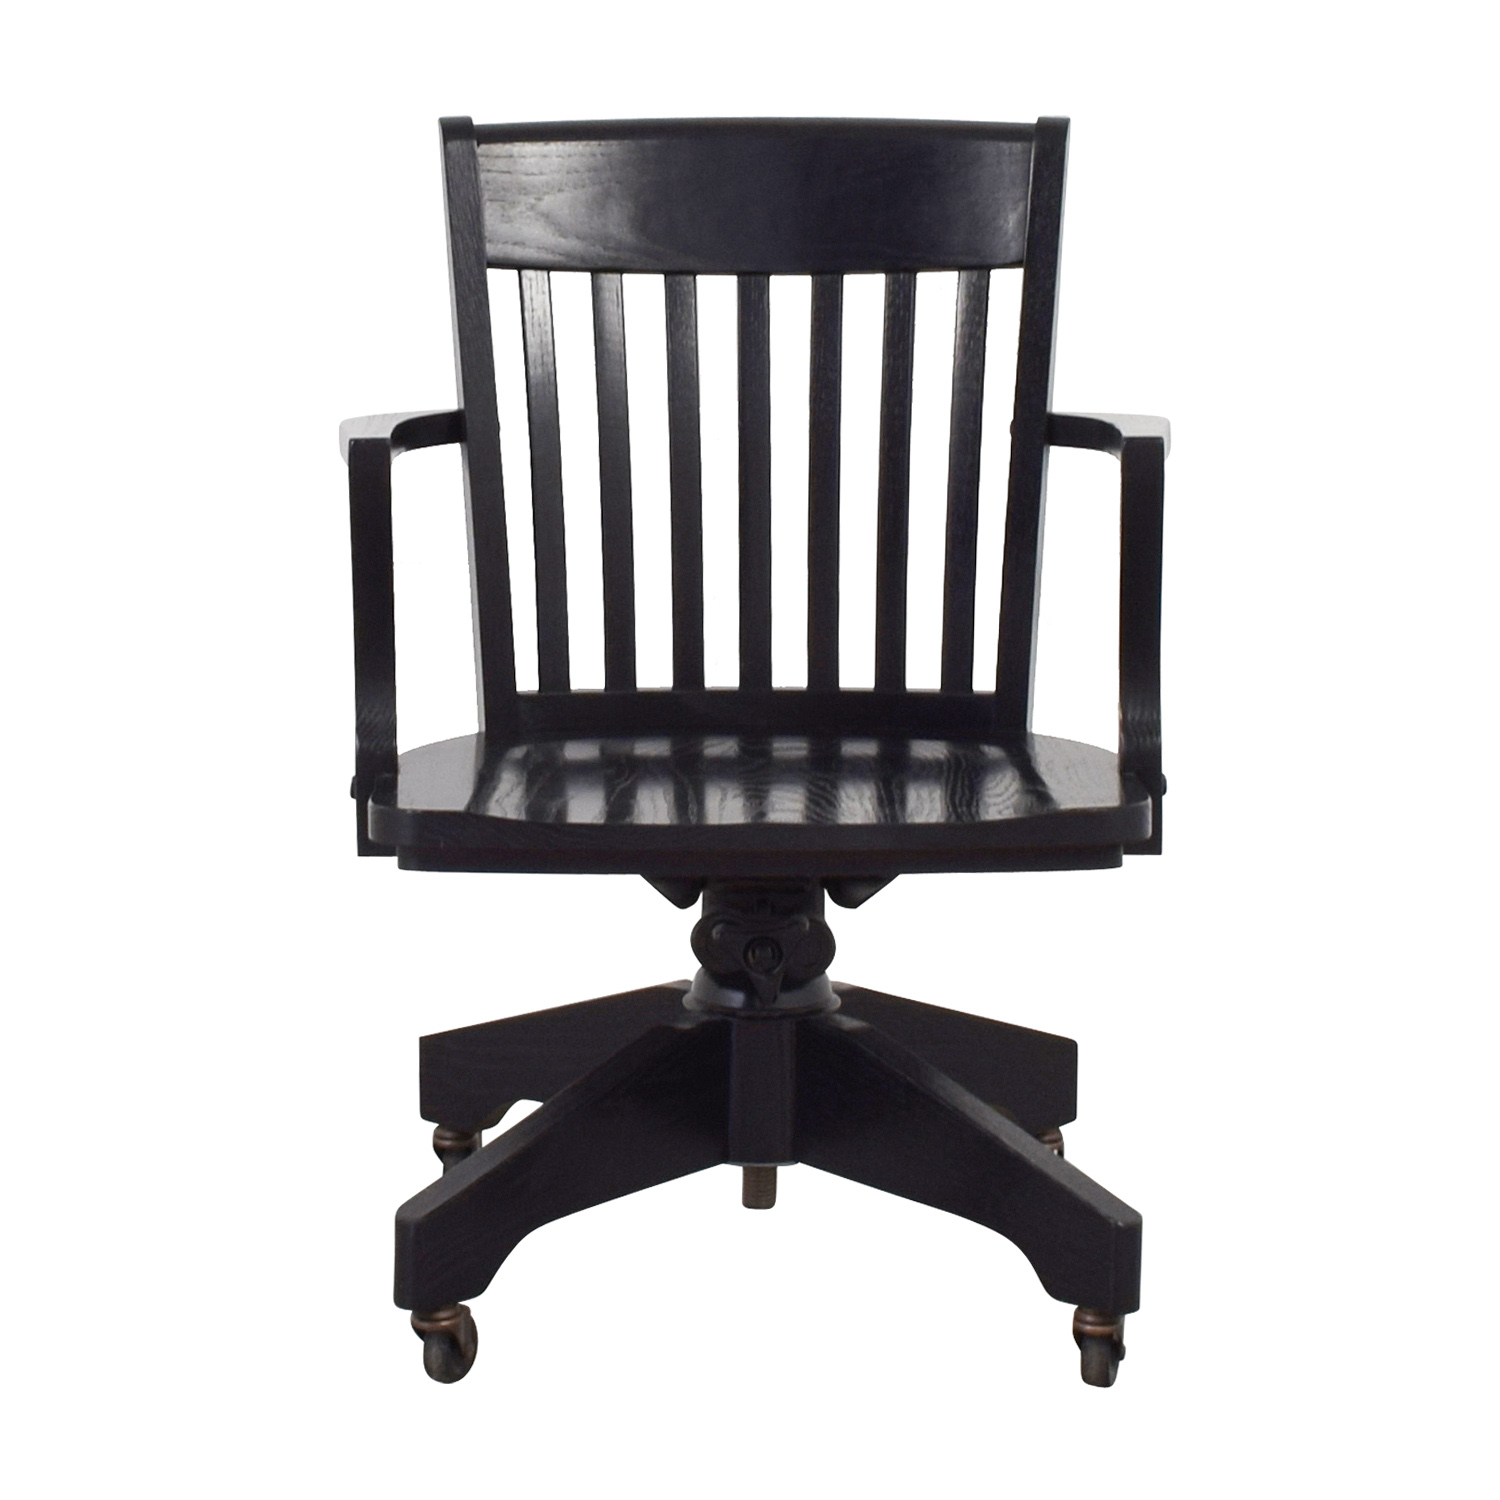 Pottery Barn Black Swivel Desk Chair sale